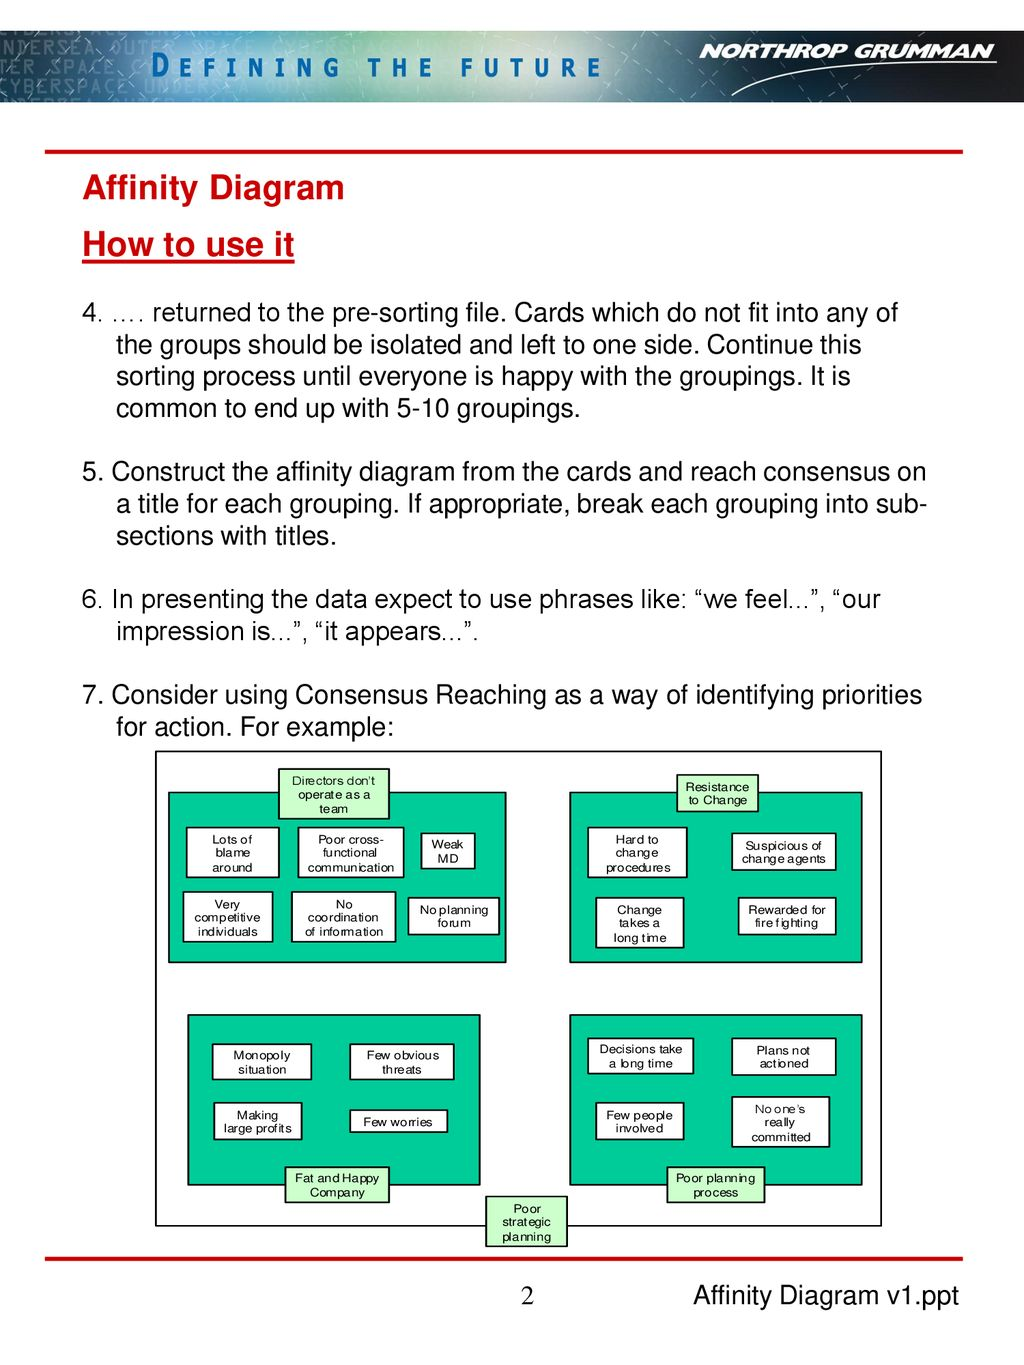 Affinity Diagram affinity diagram what it is how to use it - ppt download